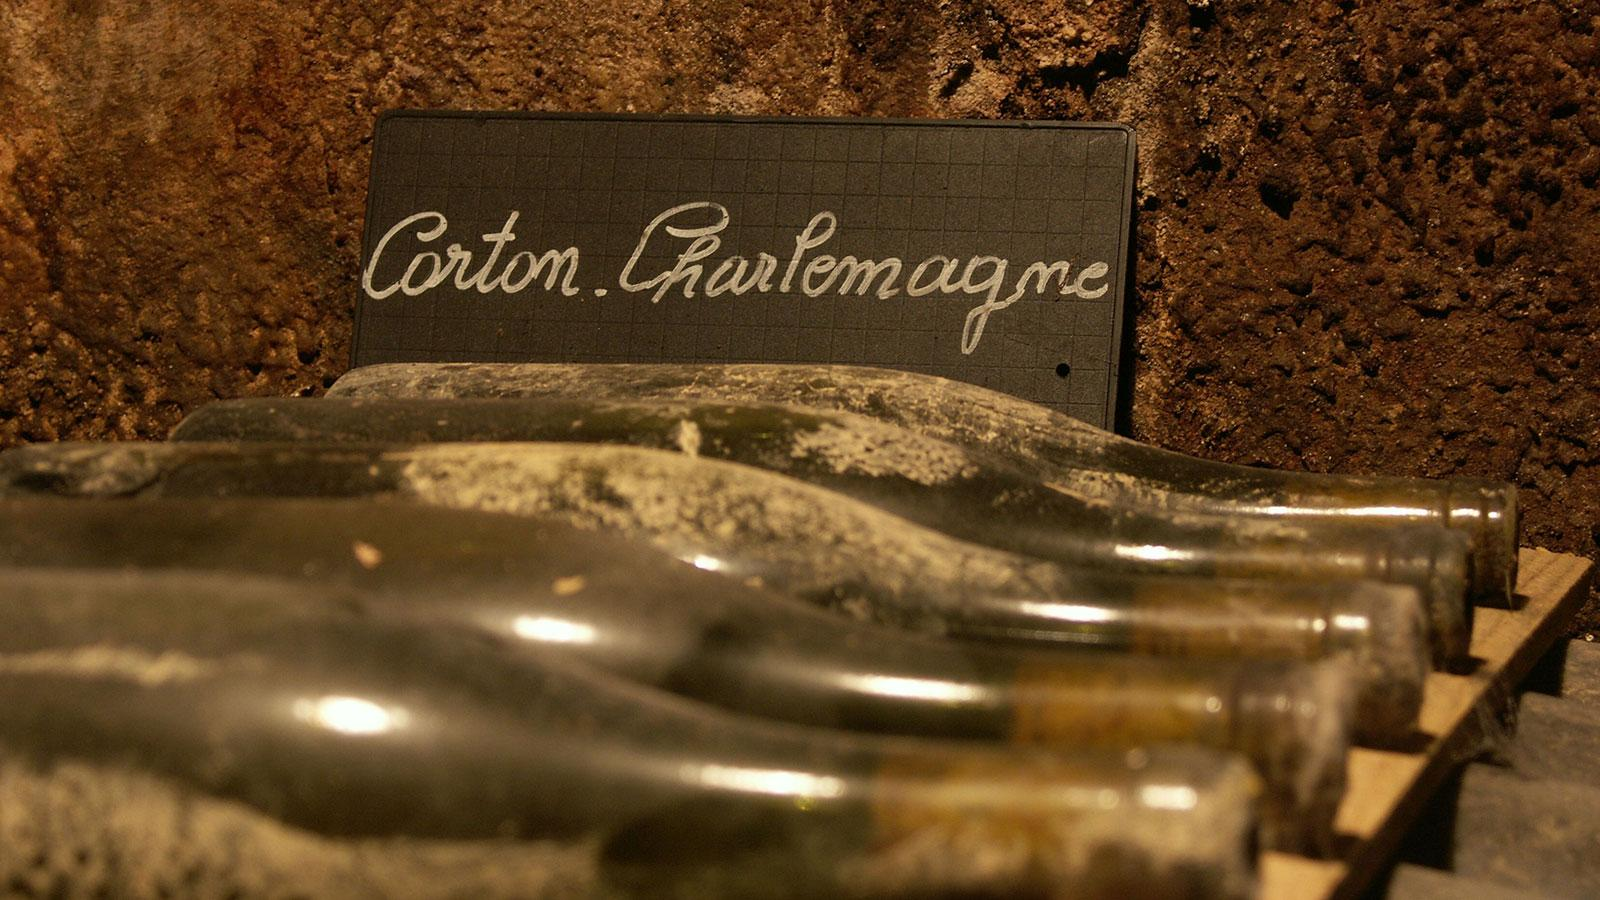 Will Jadot's 2016 Corton-Charlemagne survive the test of time? Early returns look promising.